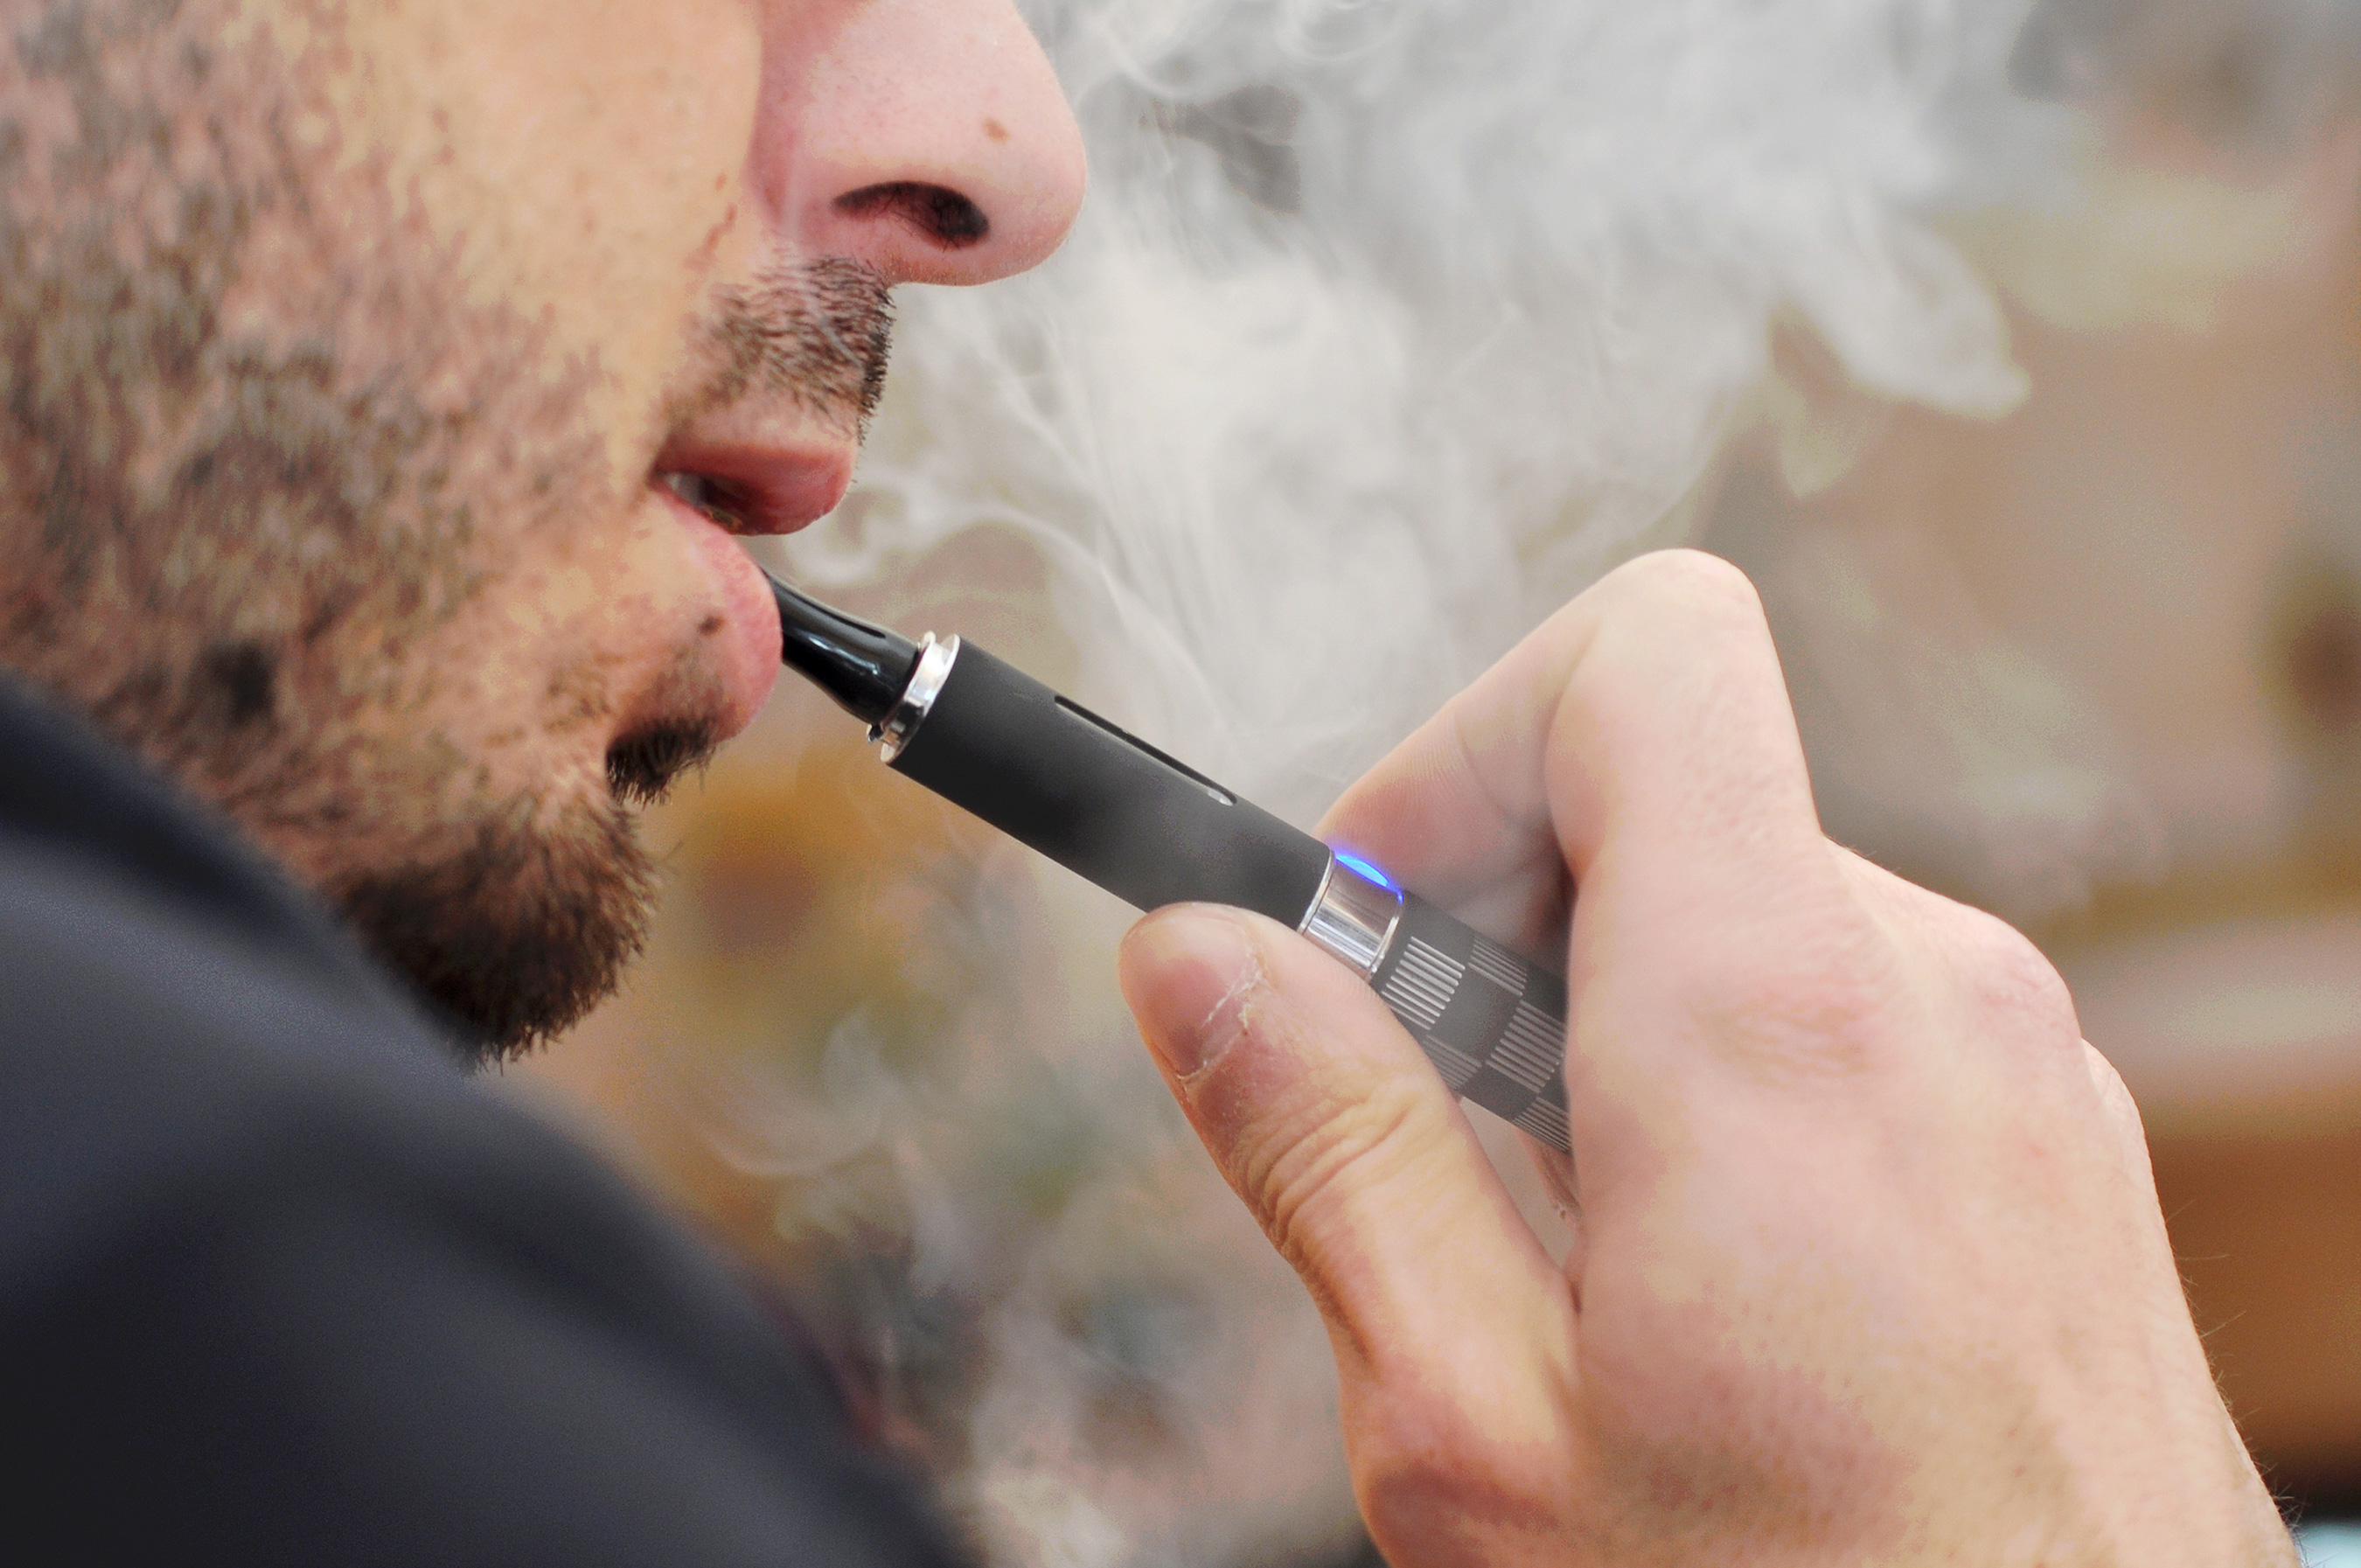 Illness related to vaping continue to soar, no cause identified yet